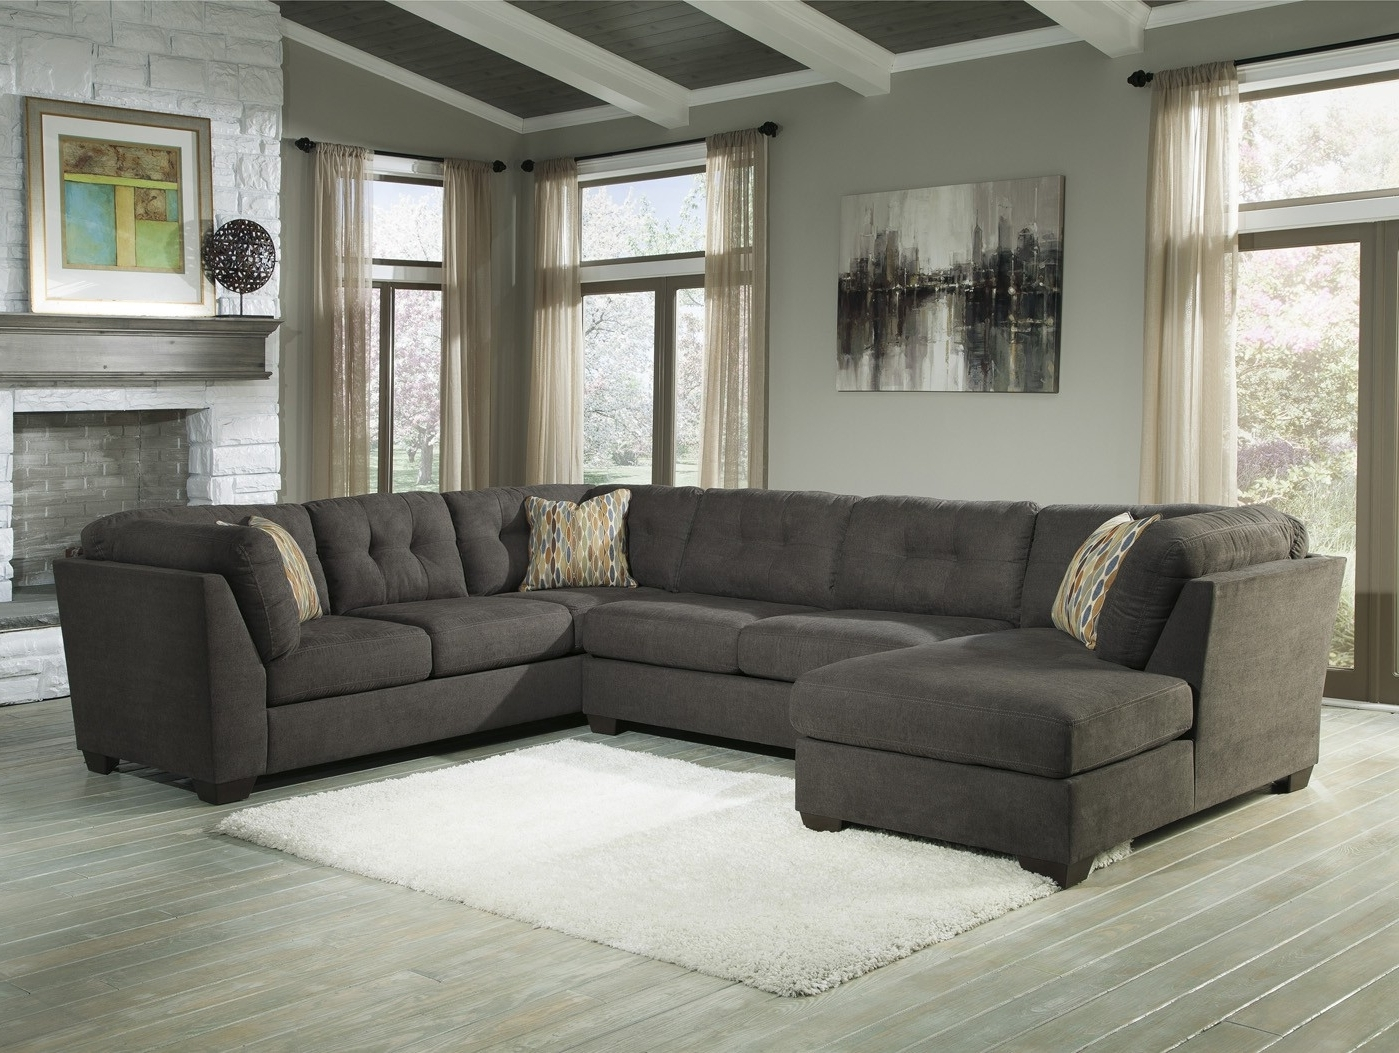 2018 Elk Grove Ca Sectional Sofas For Delta City Steel 3 Piece Sectional Sofa With Left Arm Facing (View 1 of 20)